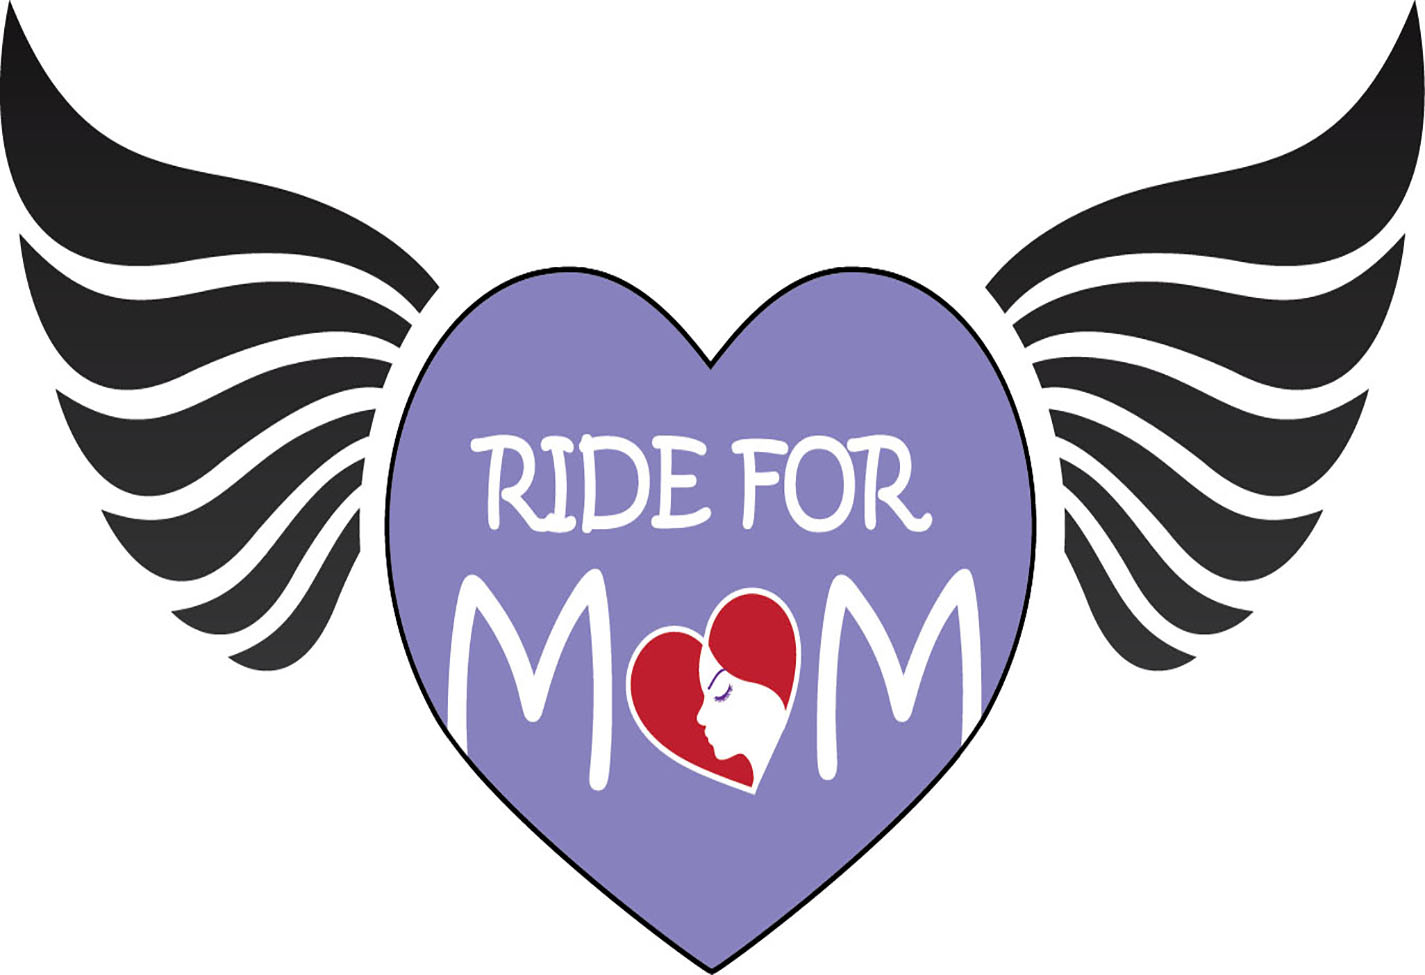 Ride for Mom